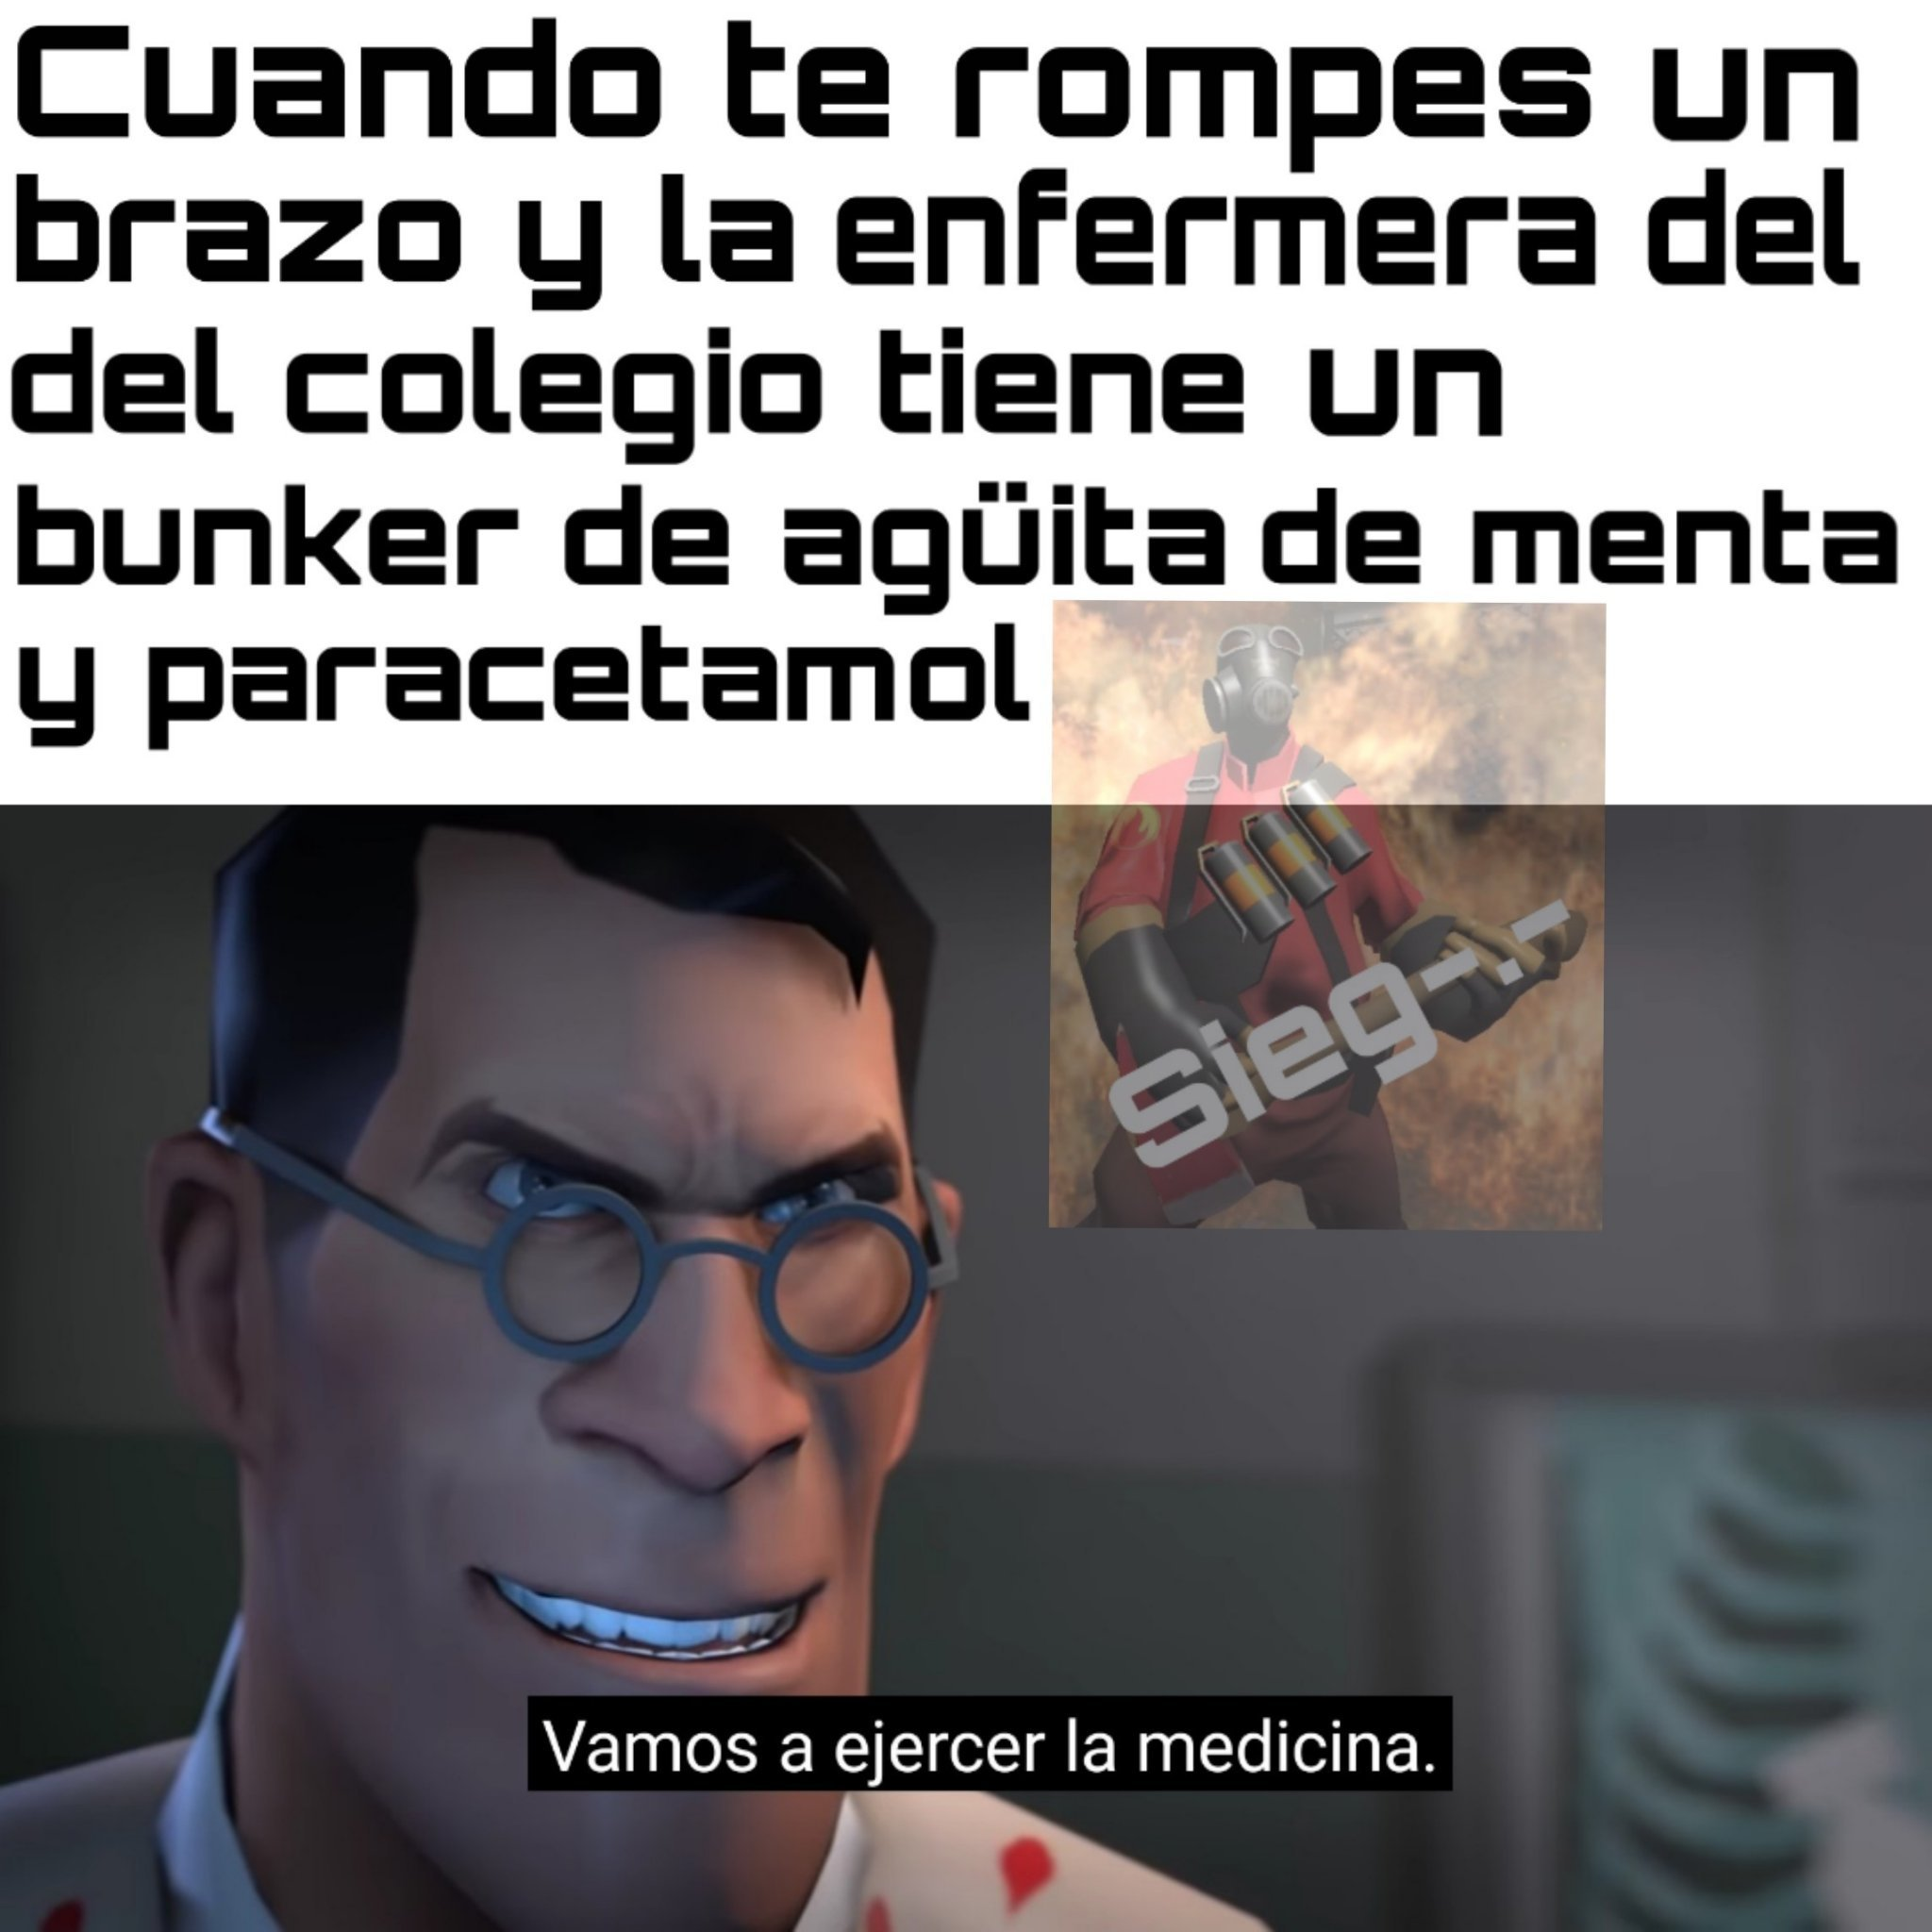 Meet the medic en otro estilo - meme